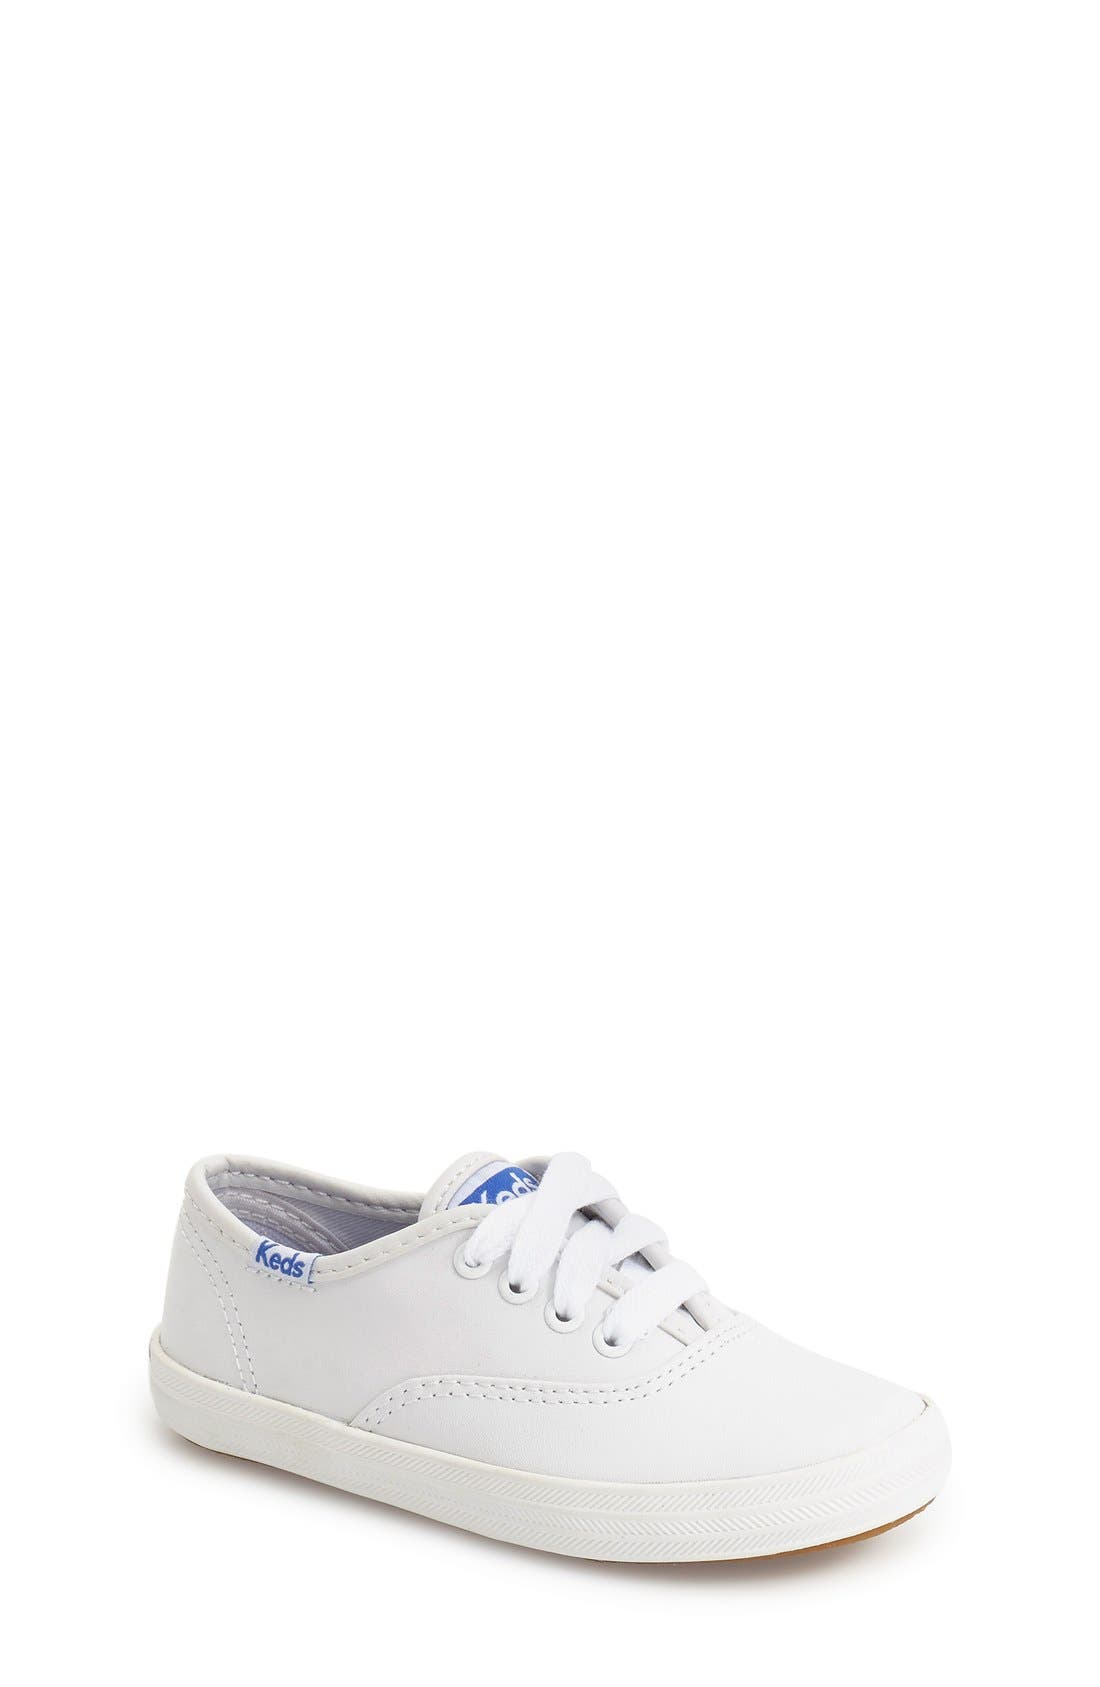 'Champion - CVO' Sneaker,                             Main thumbnail 1, color,                             White Leather